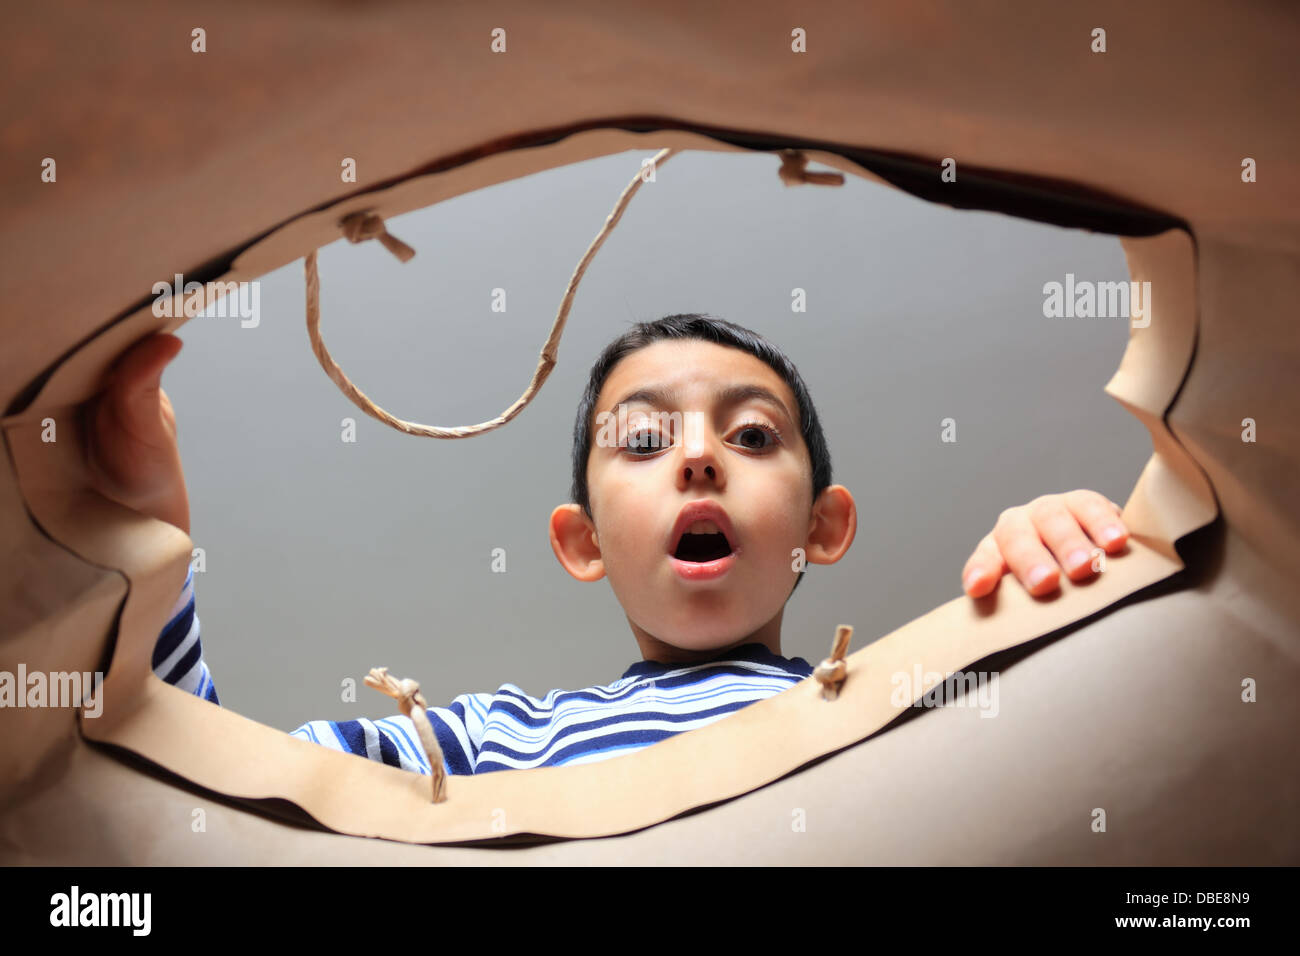 child opening bag and looking inside with surprise - Stock Image